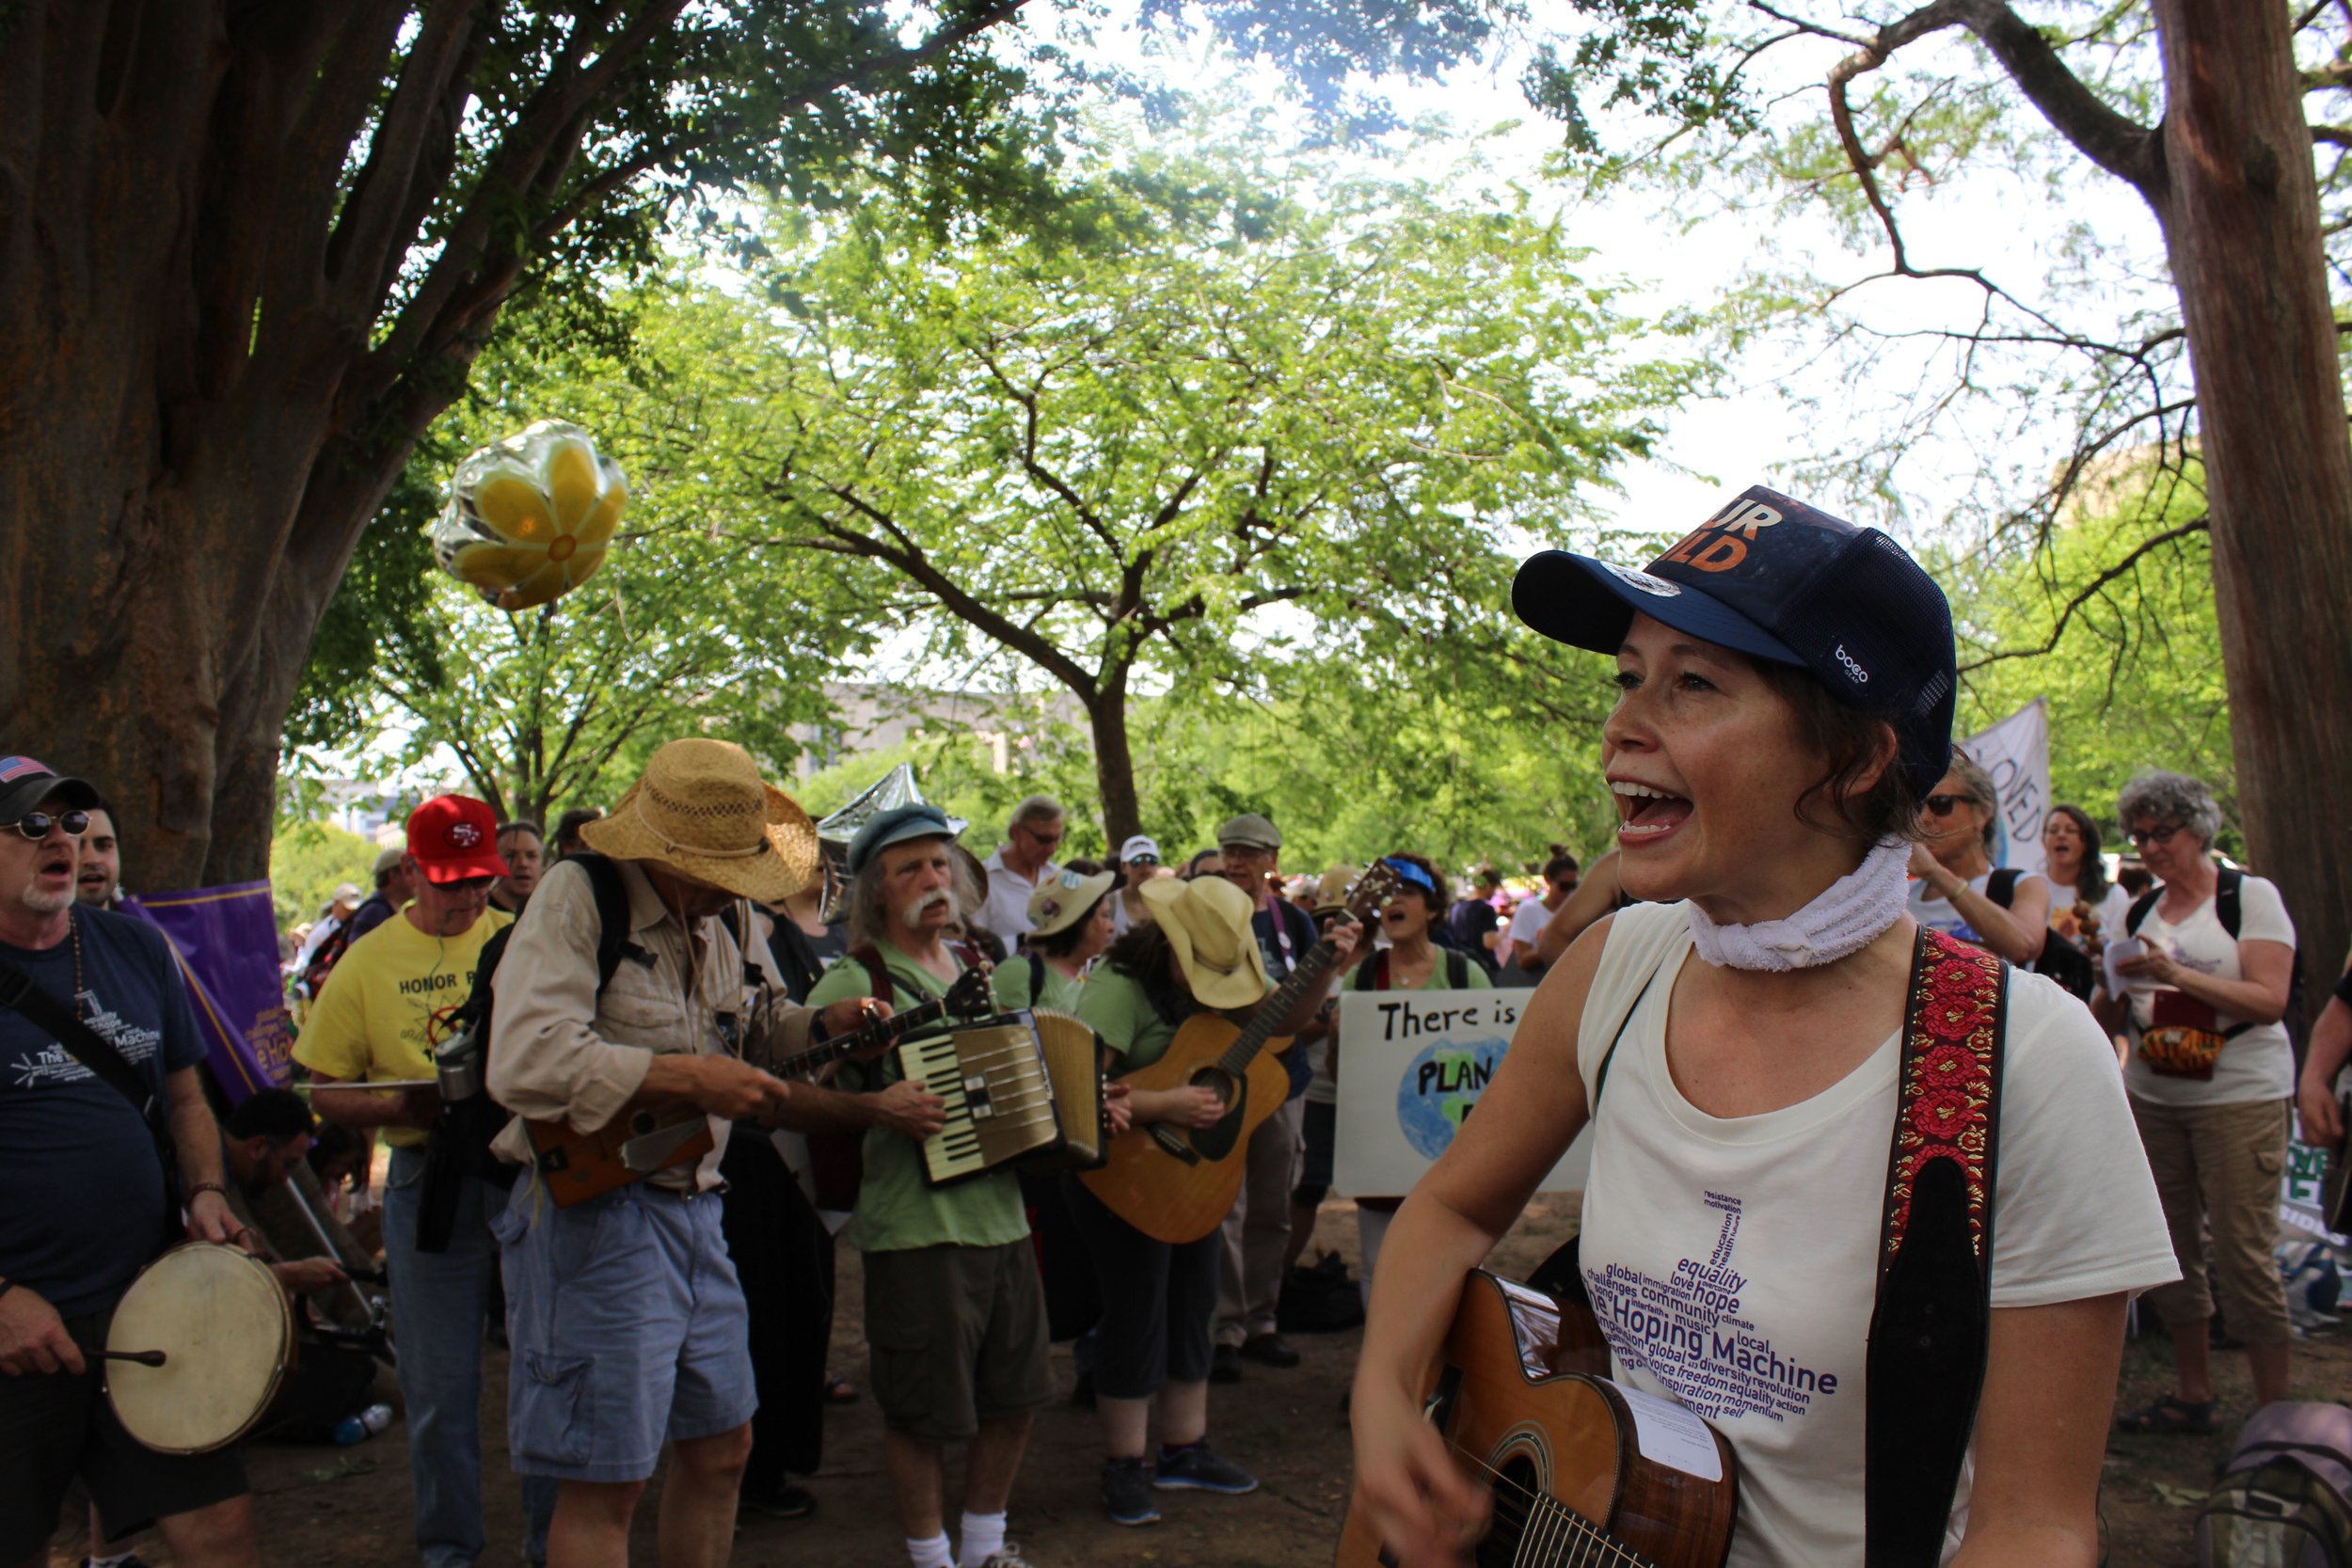 Sarah Lee Guthrie and the Hoping Machine singers and musicians are joined by fellow demonstrators during the People's Climate March in the nation's capitol April 29.